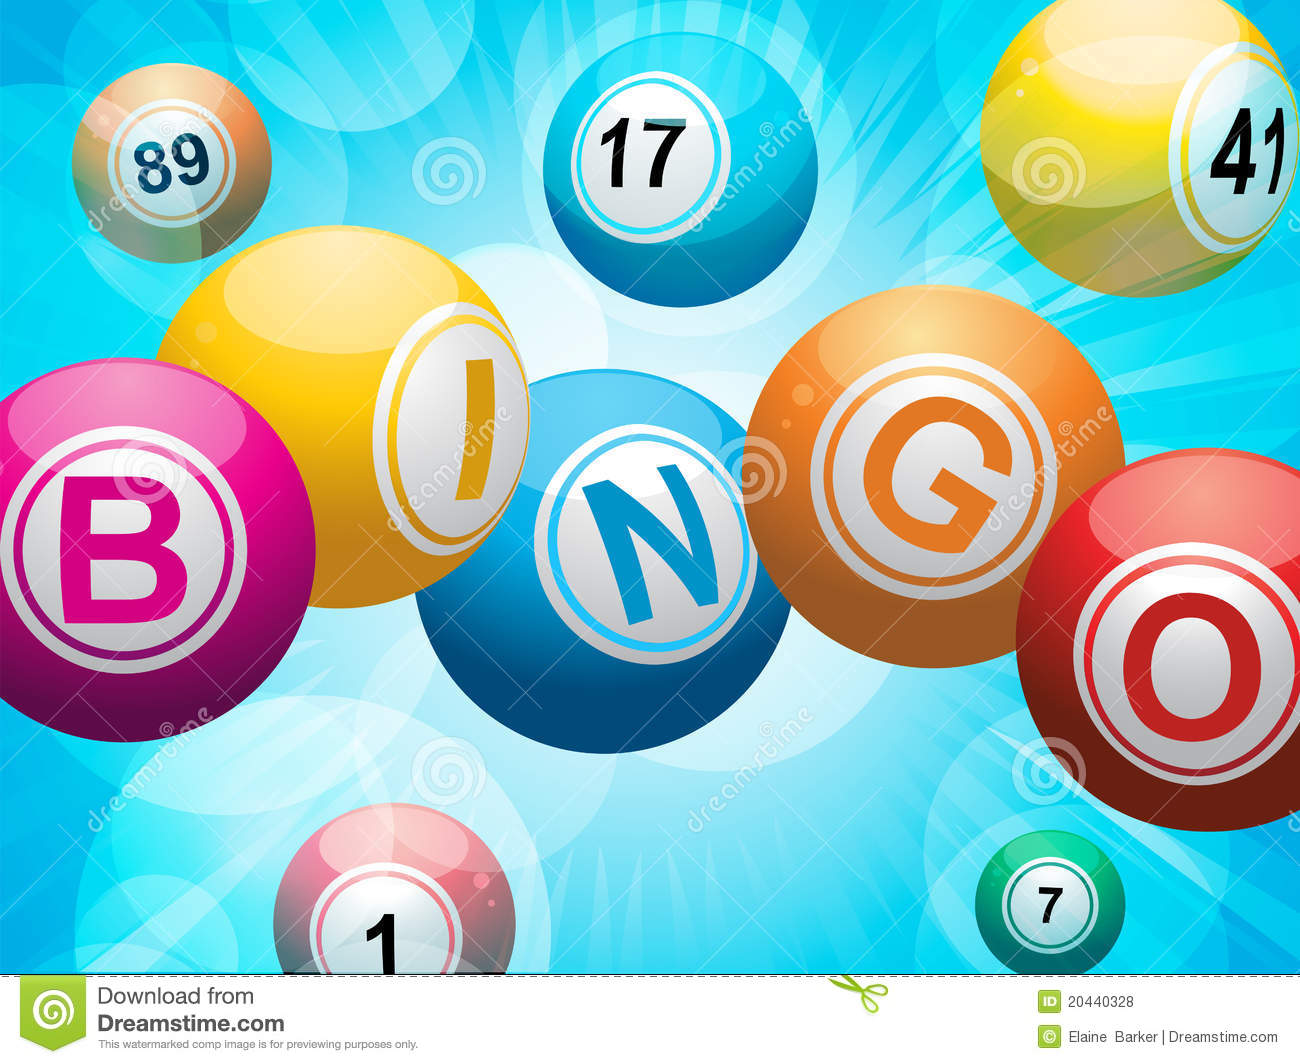 Bingo balls spelling the word 'bingo' on a glowing blue background.